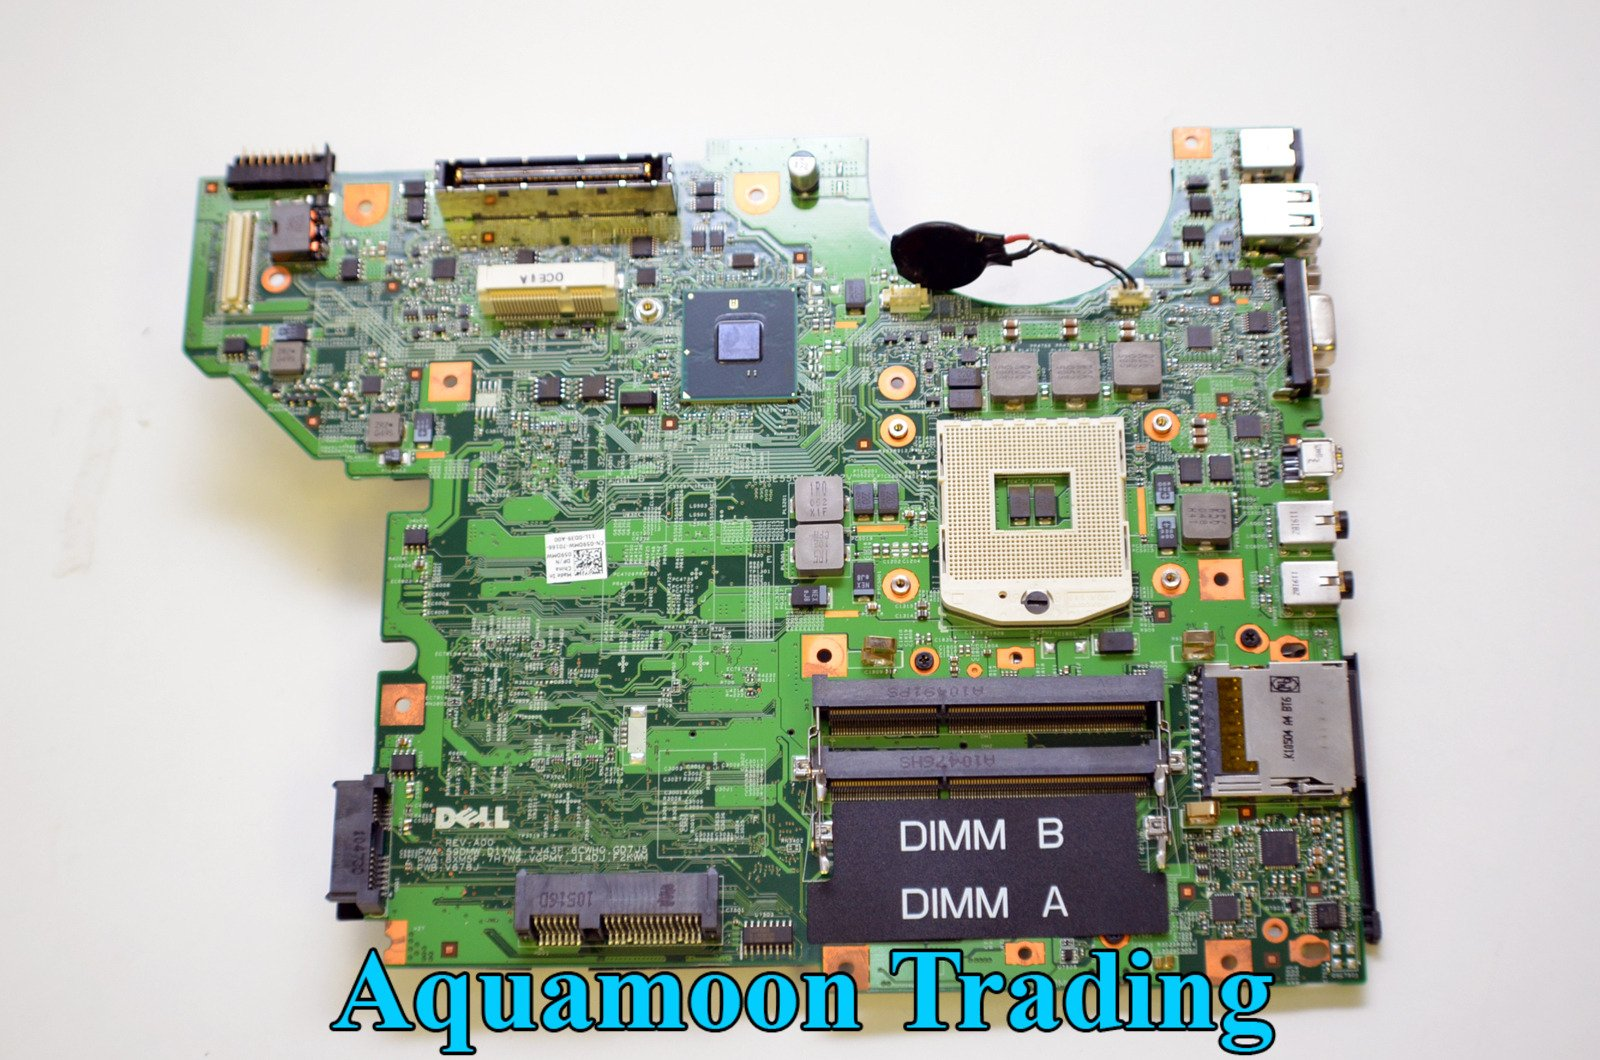 NEW Genuine OEM DELL Latitude E5410 Laptop Notebook Intel GMA Chipset Pentium Cpu Processor Slot DDR3 Dimm PMCIA Insert VGA USB Internal Data Computing Performance Motherboard D1VN4 59dmw Main Logic System Board